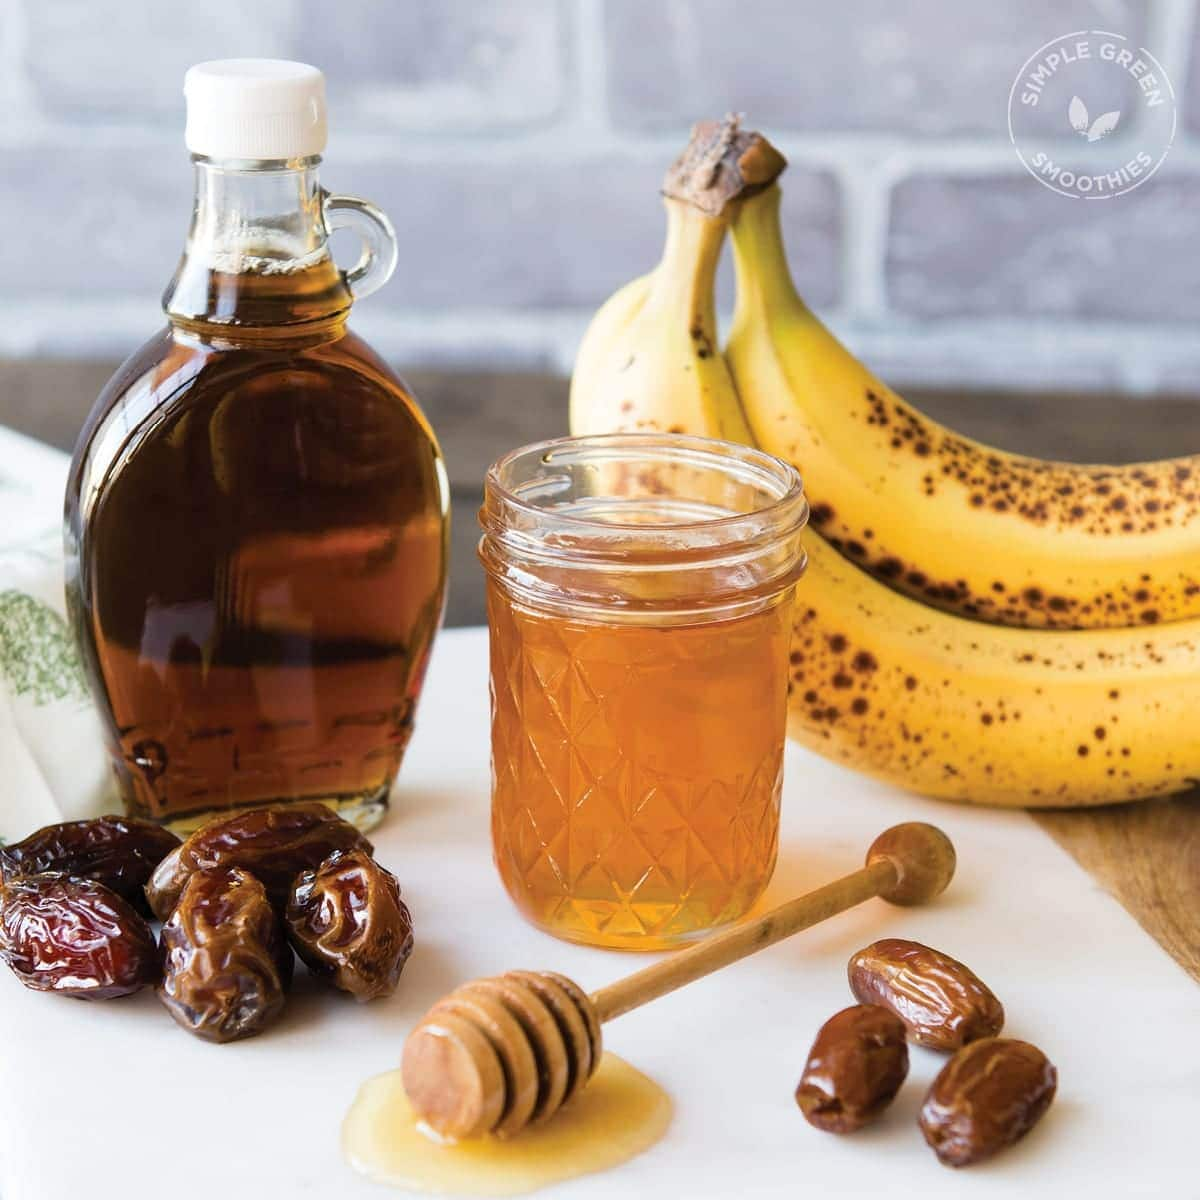 Natural sweeteners help with weight loss